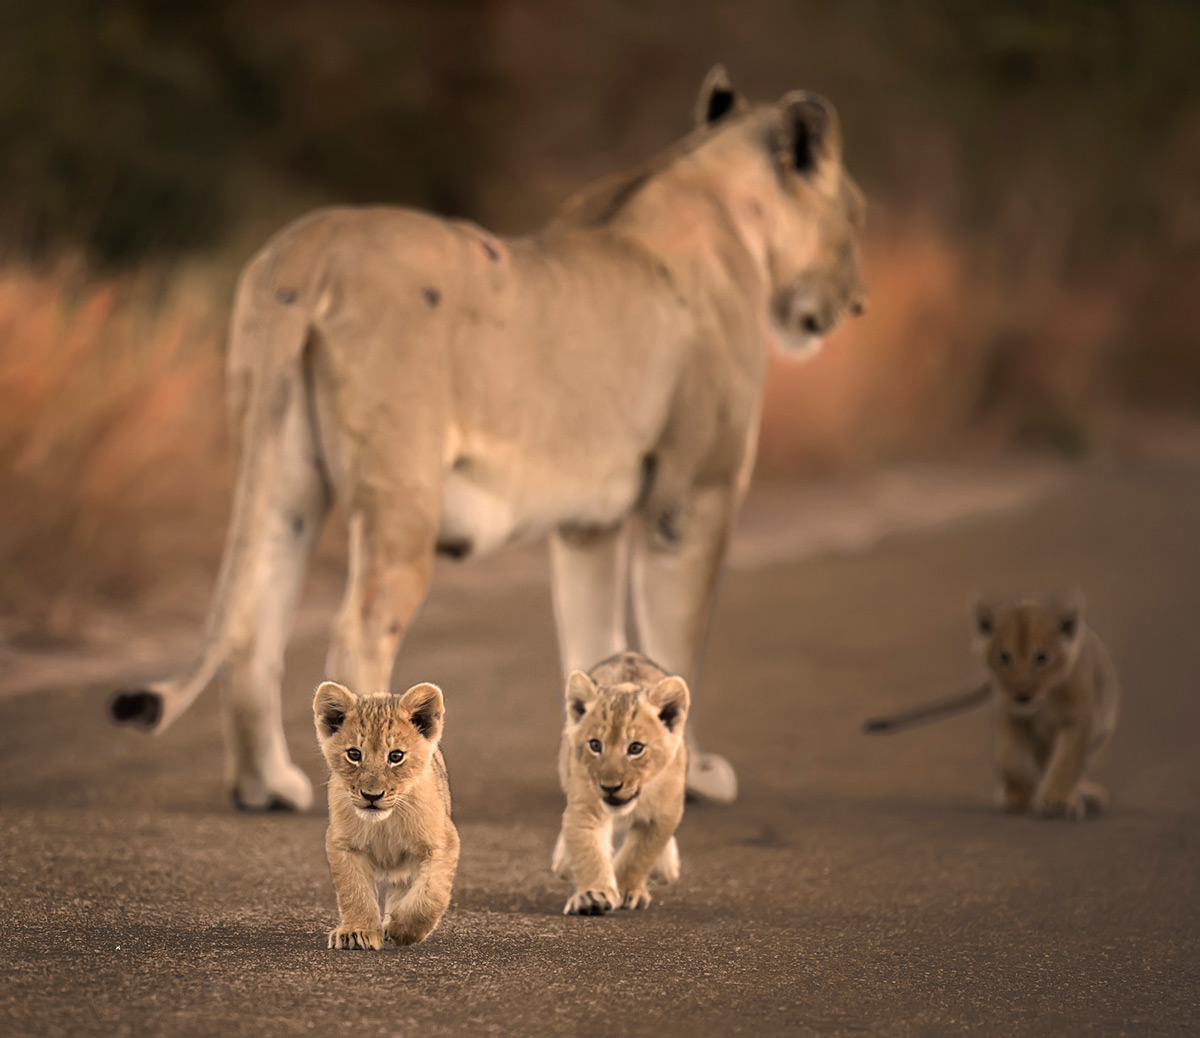 A lioness with her curious cubs in Kruger National Park, South Africa © Licinia Machado